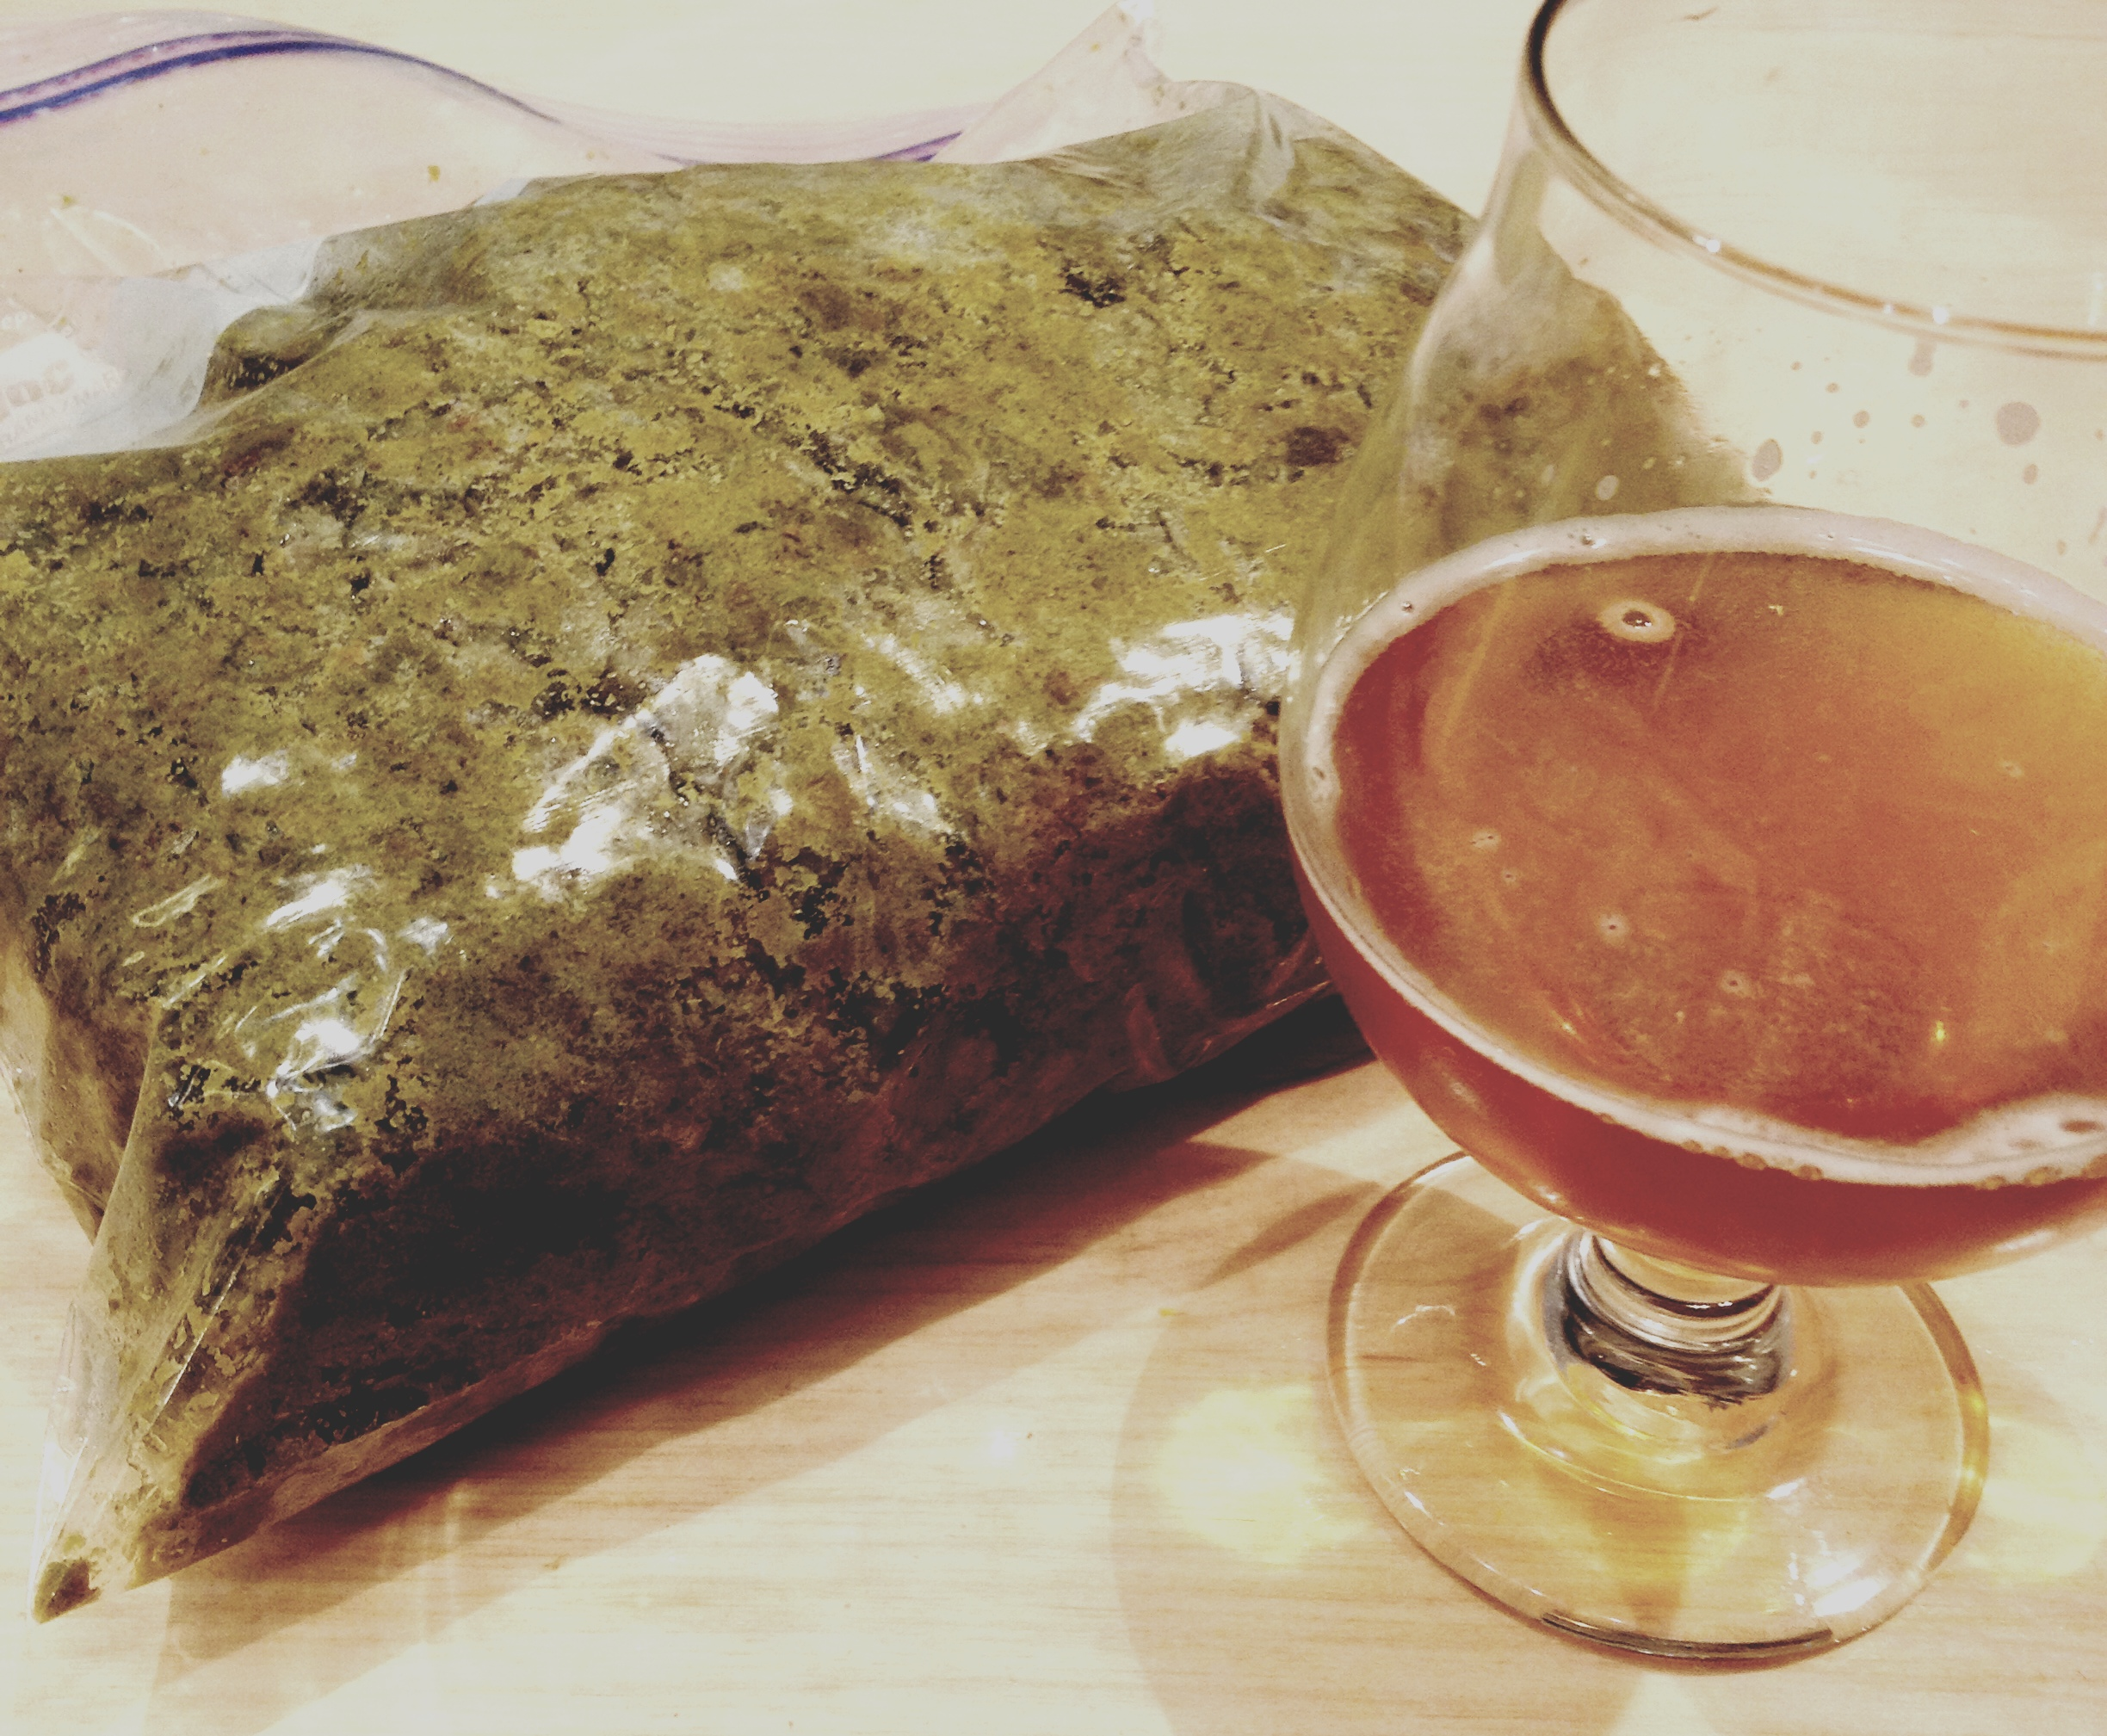 Boil hops pulled out from this batch of DIPA, destined for the compost. Shown alongside pour of the previous batch of DIPA.